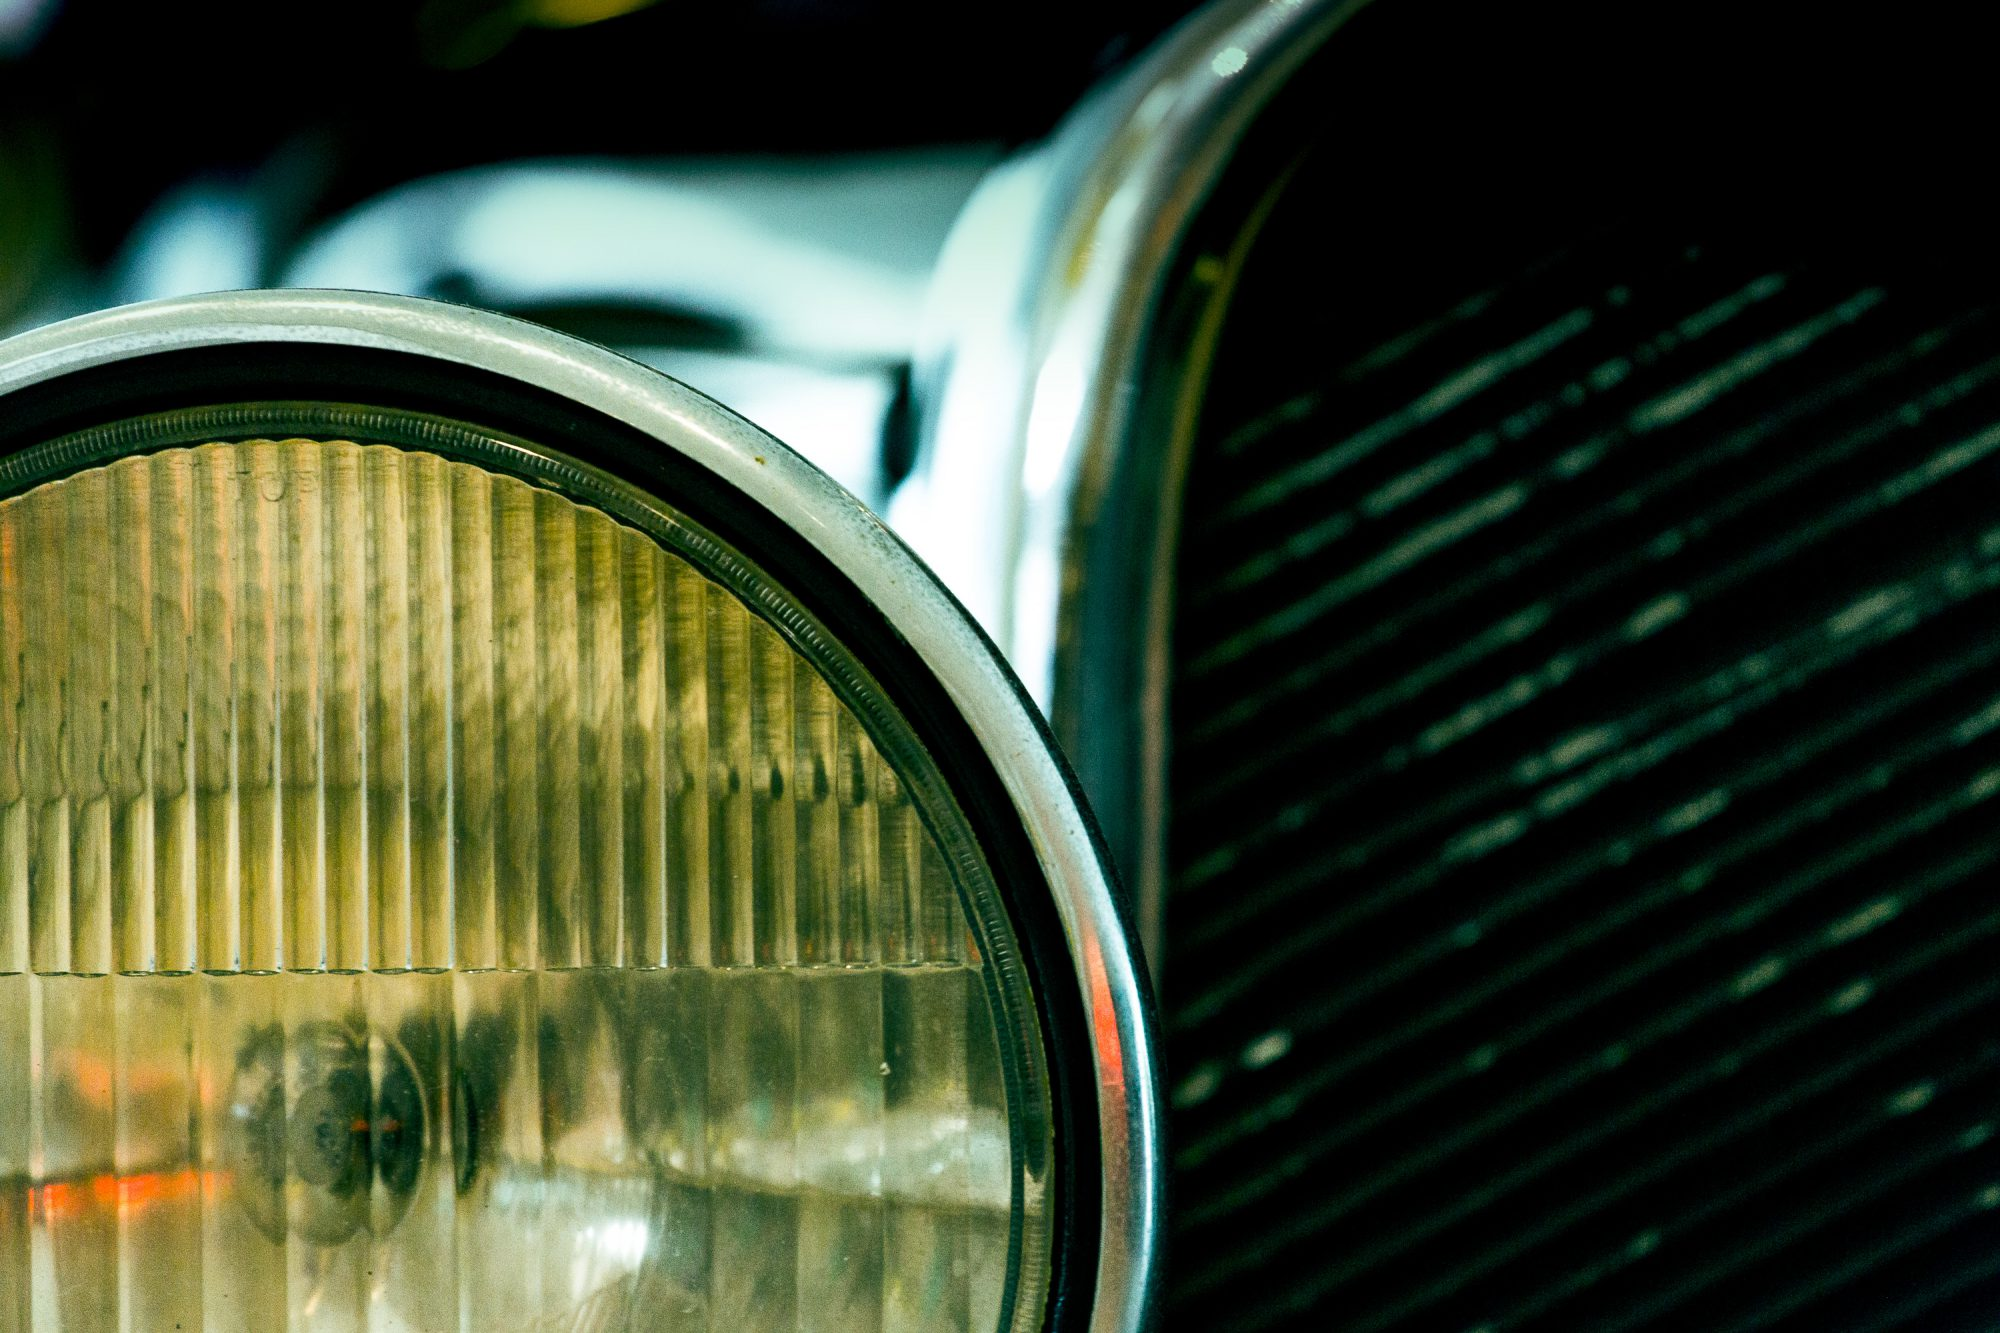 Headlight on a vintage car